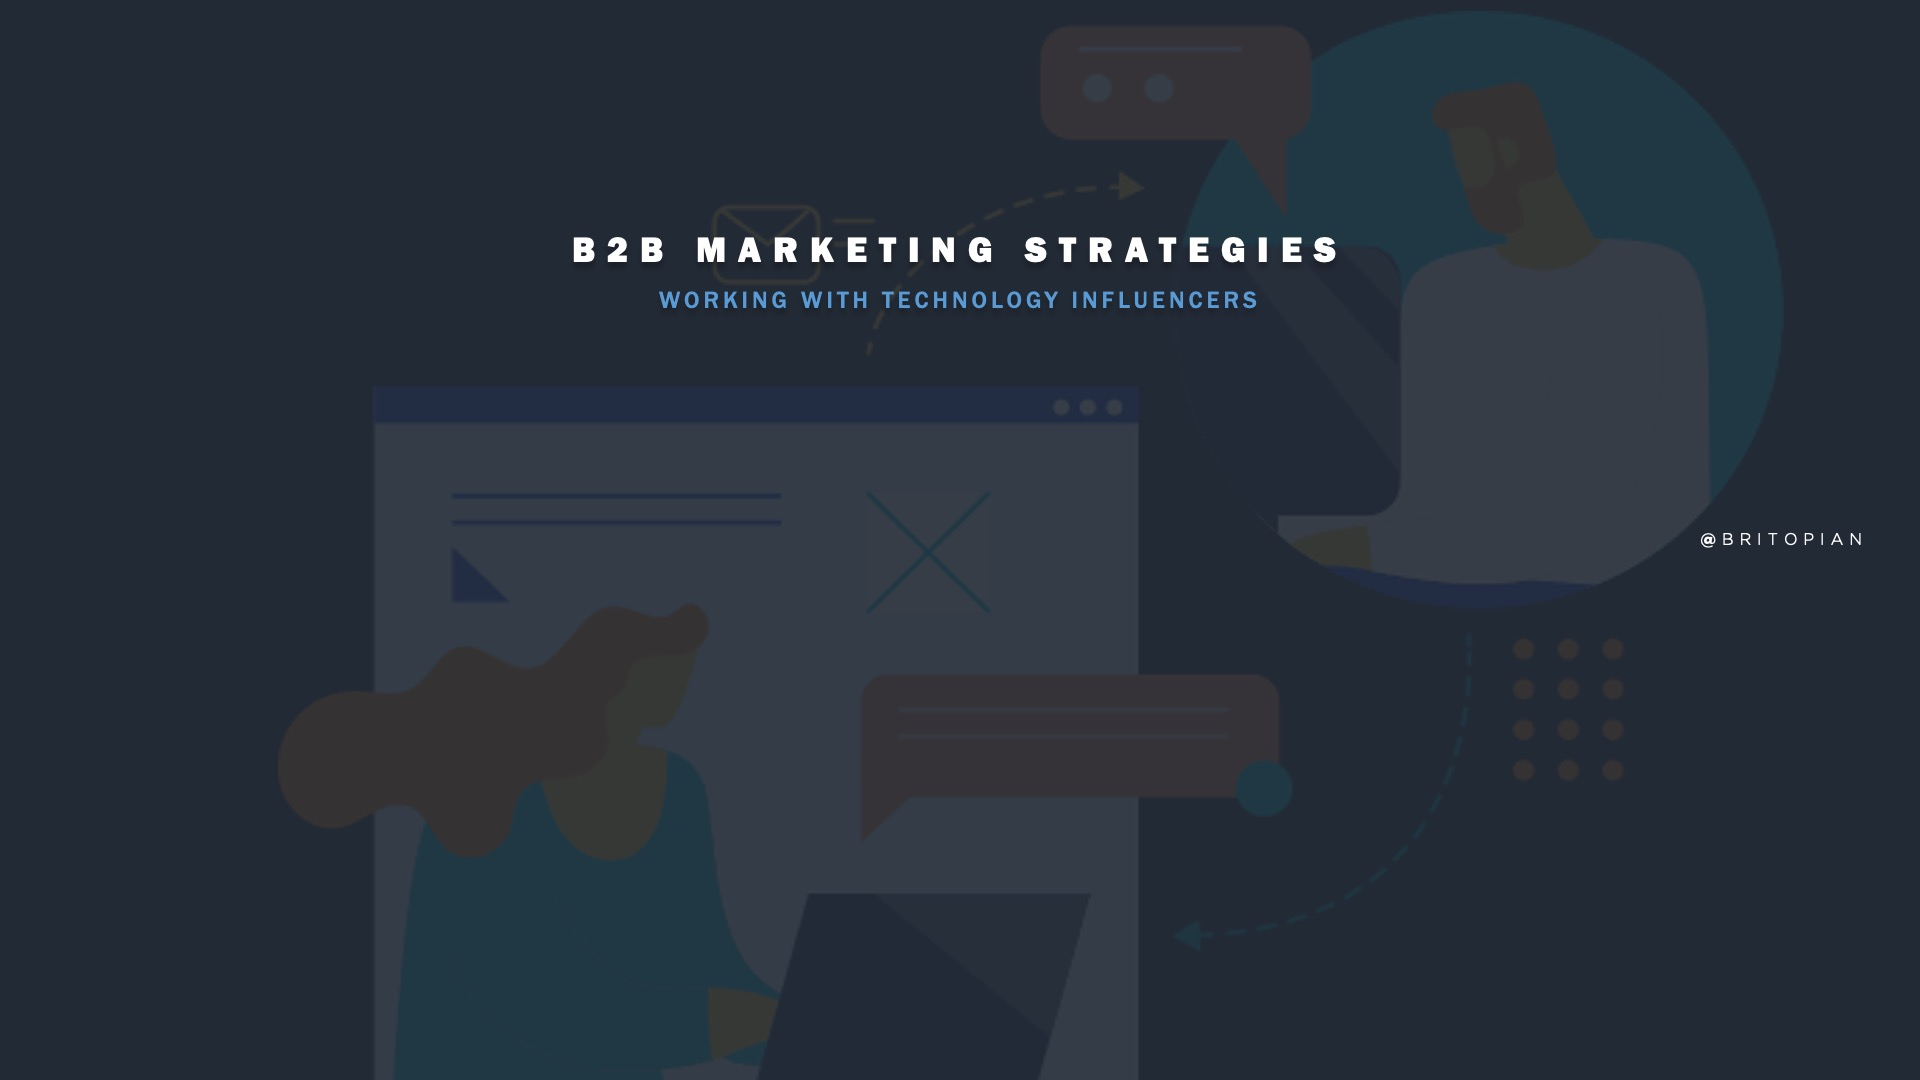 B2B Marketing Strategies: Working With Technology Influencers